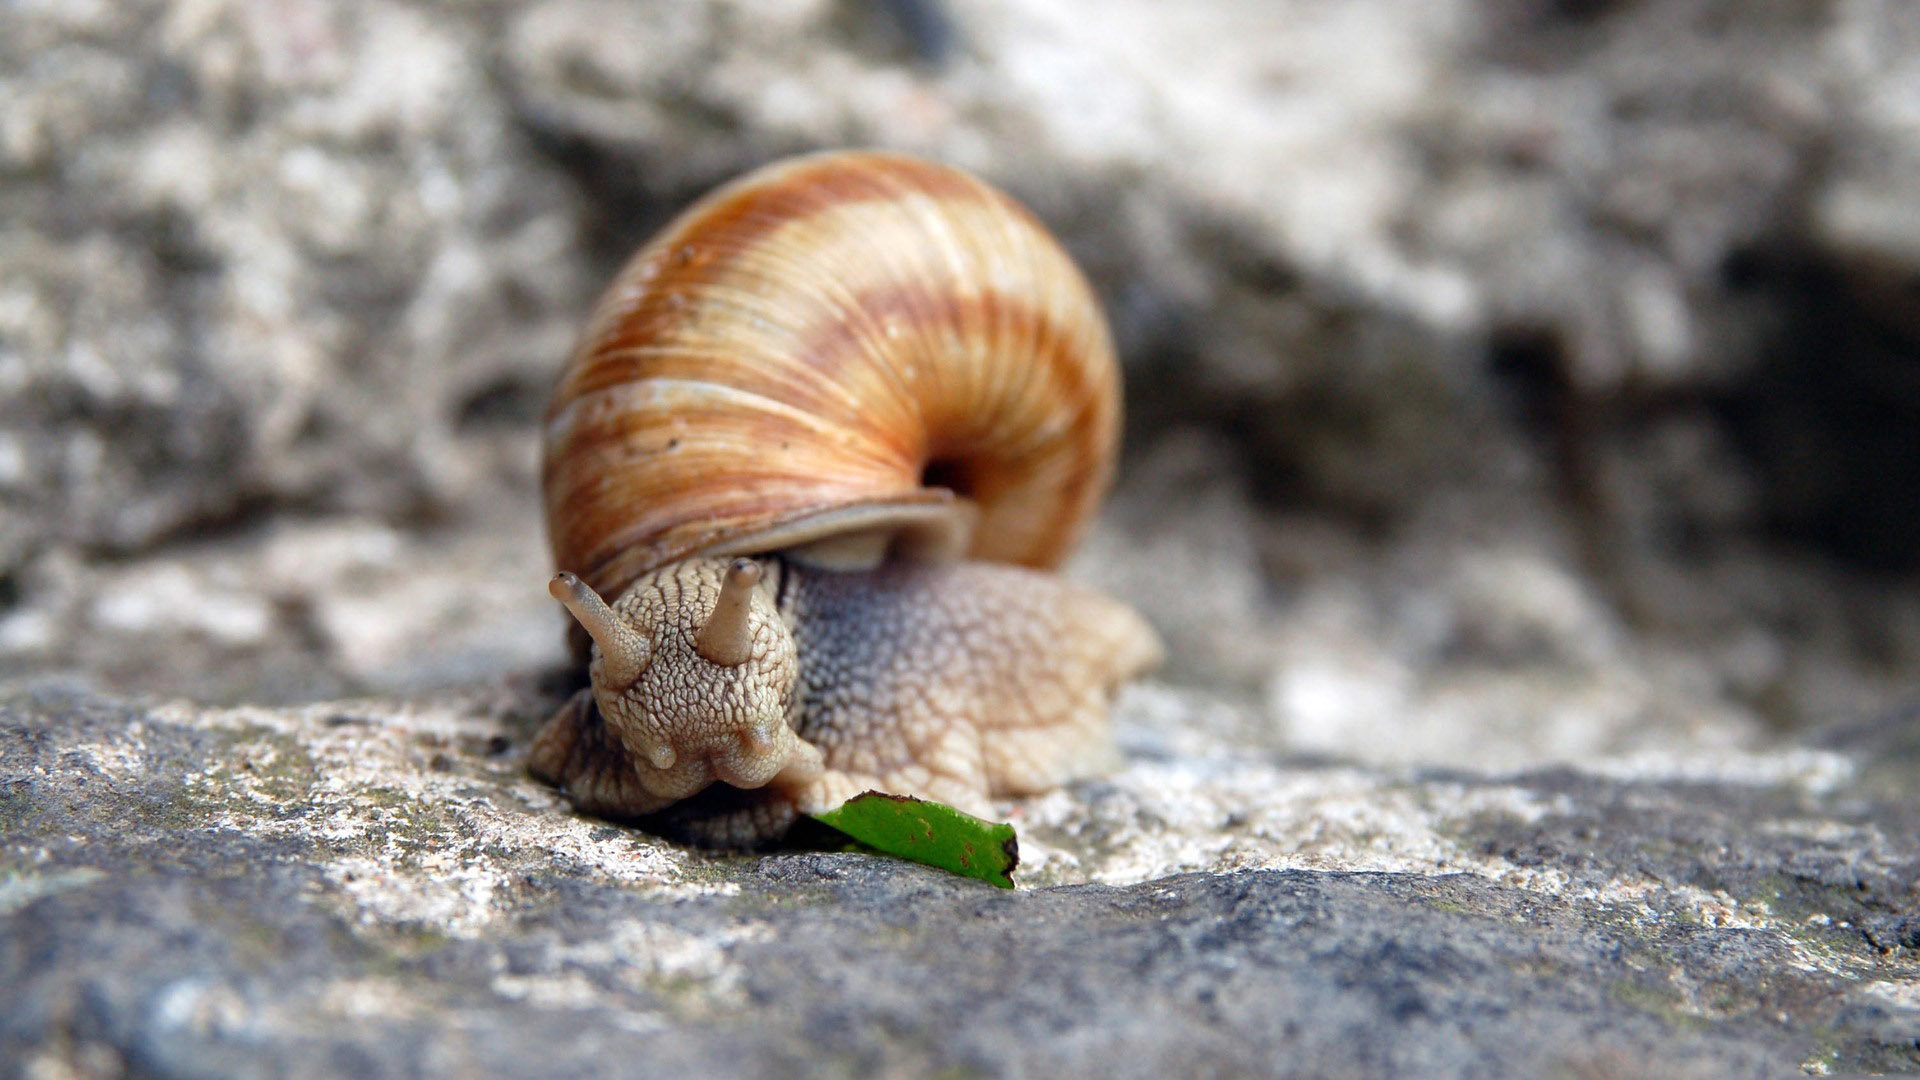 Download full hd Snail computer wallpaper ID:198899 for free